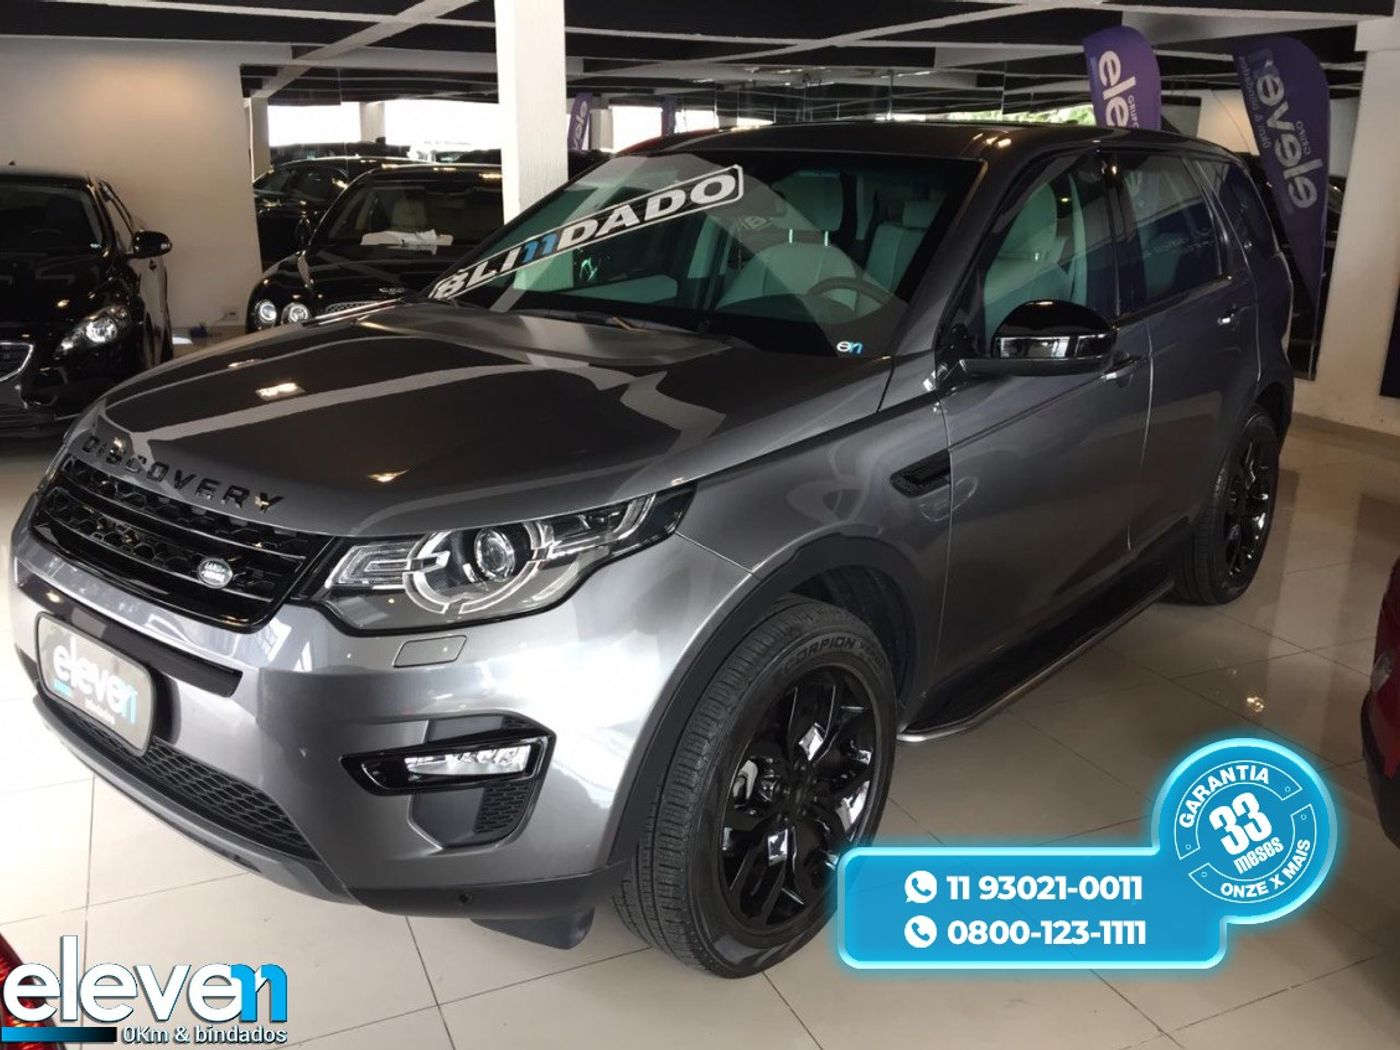 Land Rover Discovery Sp.HSE 2.0 4x4 180cv Die. Aut.